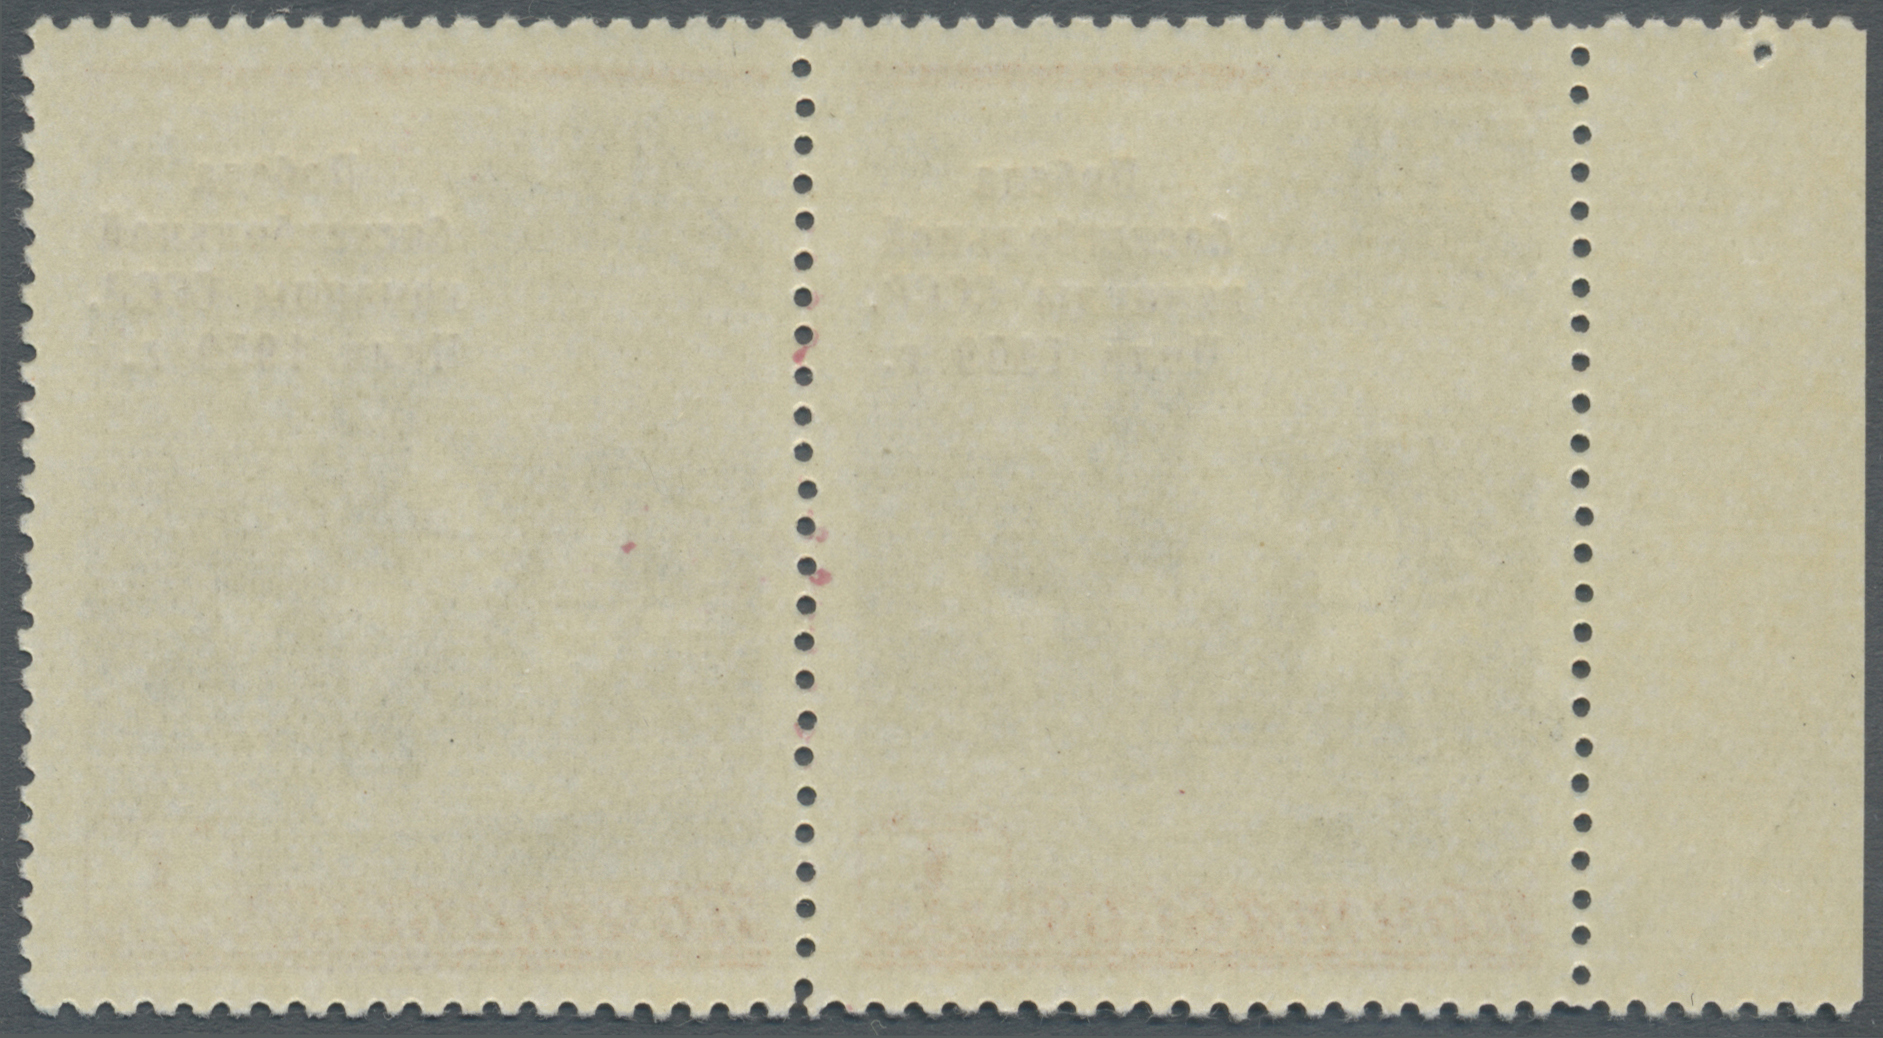 Lot 19091 - sowjetunion  -  Auktionshaus Christoph Gärtner GmbH & Co. KG Single lots Philately Overseas & Europe. Auction #39 Day 4